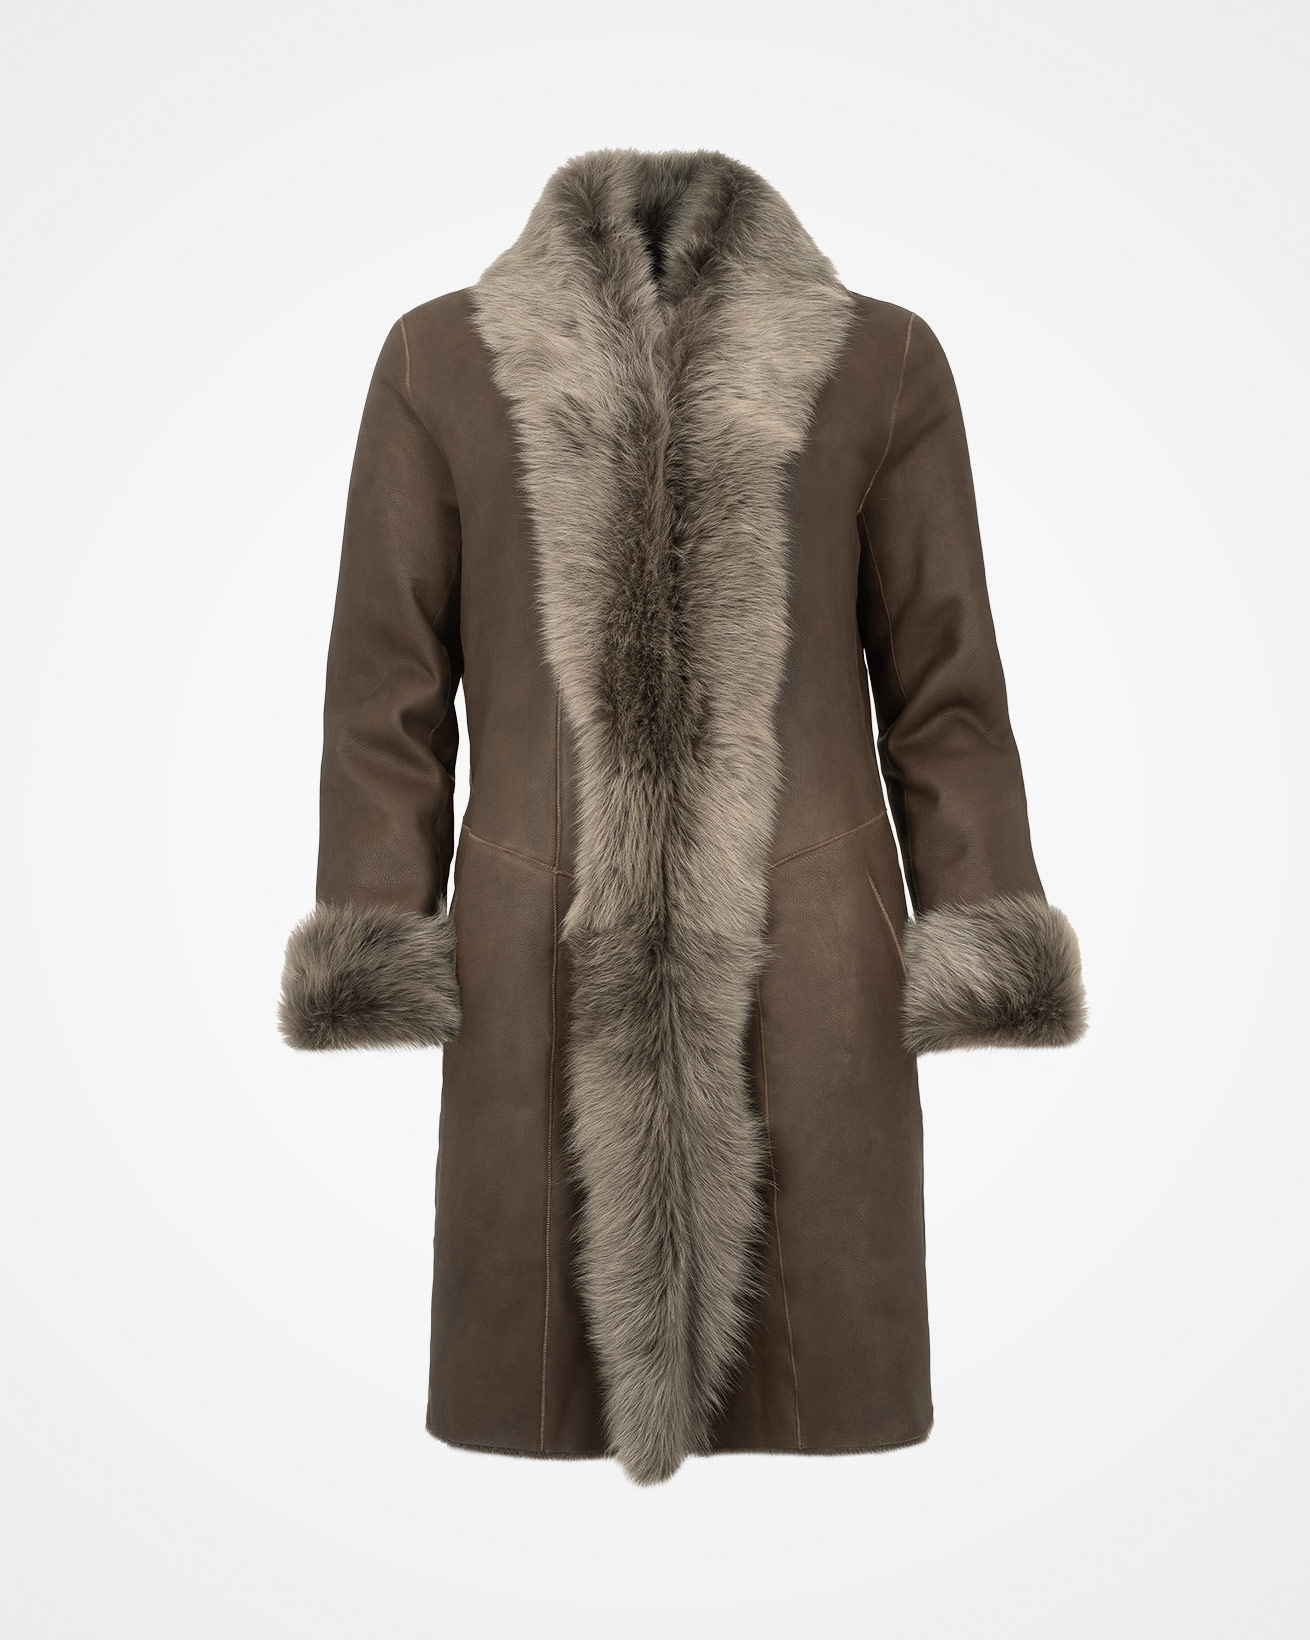 6020_3-4-toscana-trim-coat-tanners-brown-nappa_front.jpg